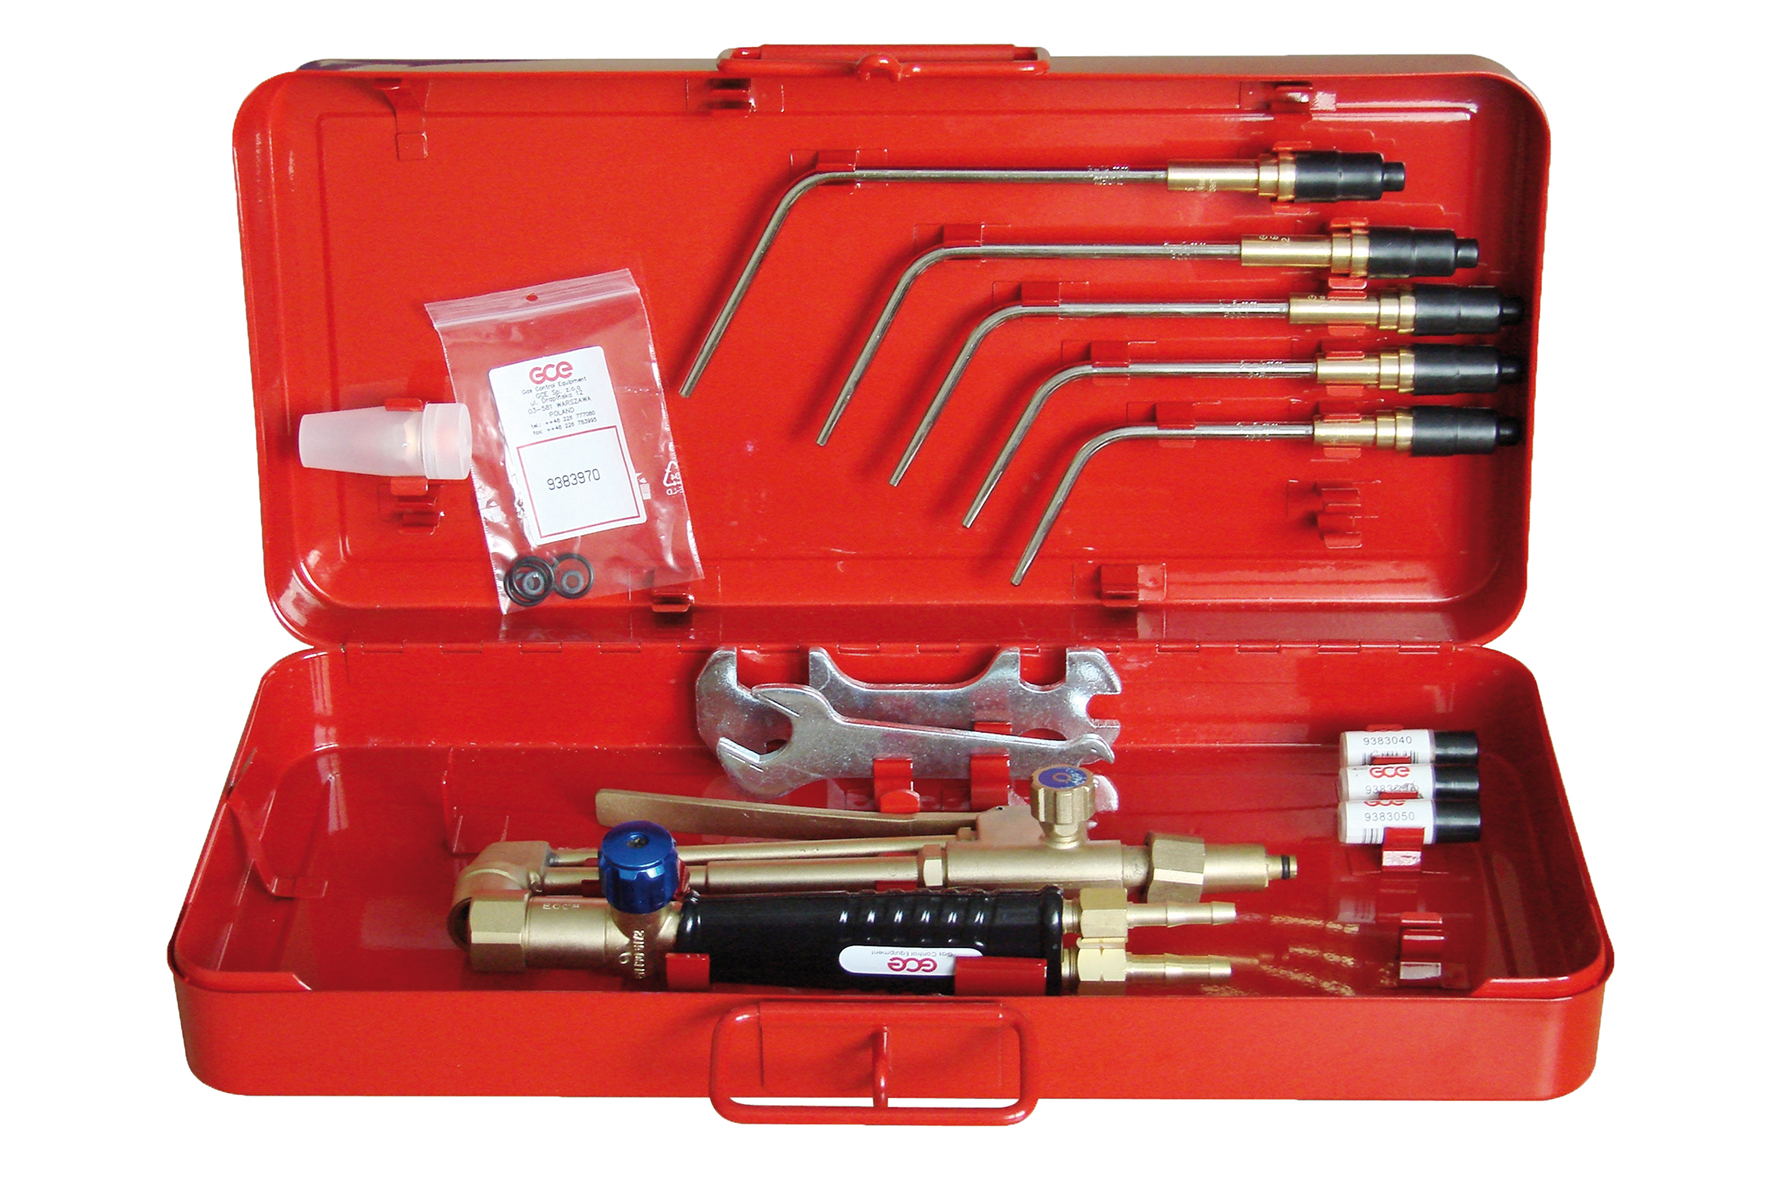 CUTTING&WELDING SET U7 ACE ECO page image